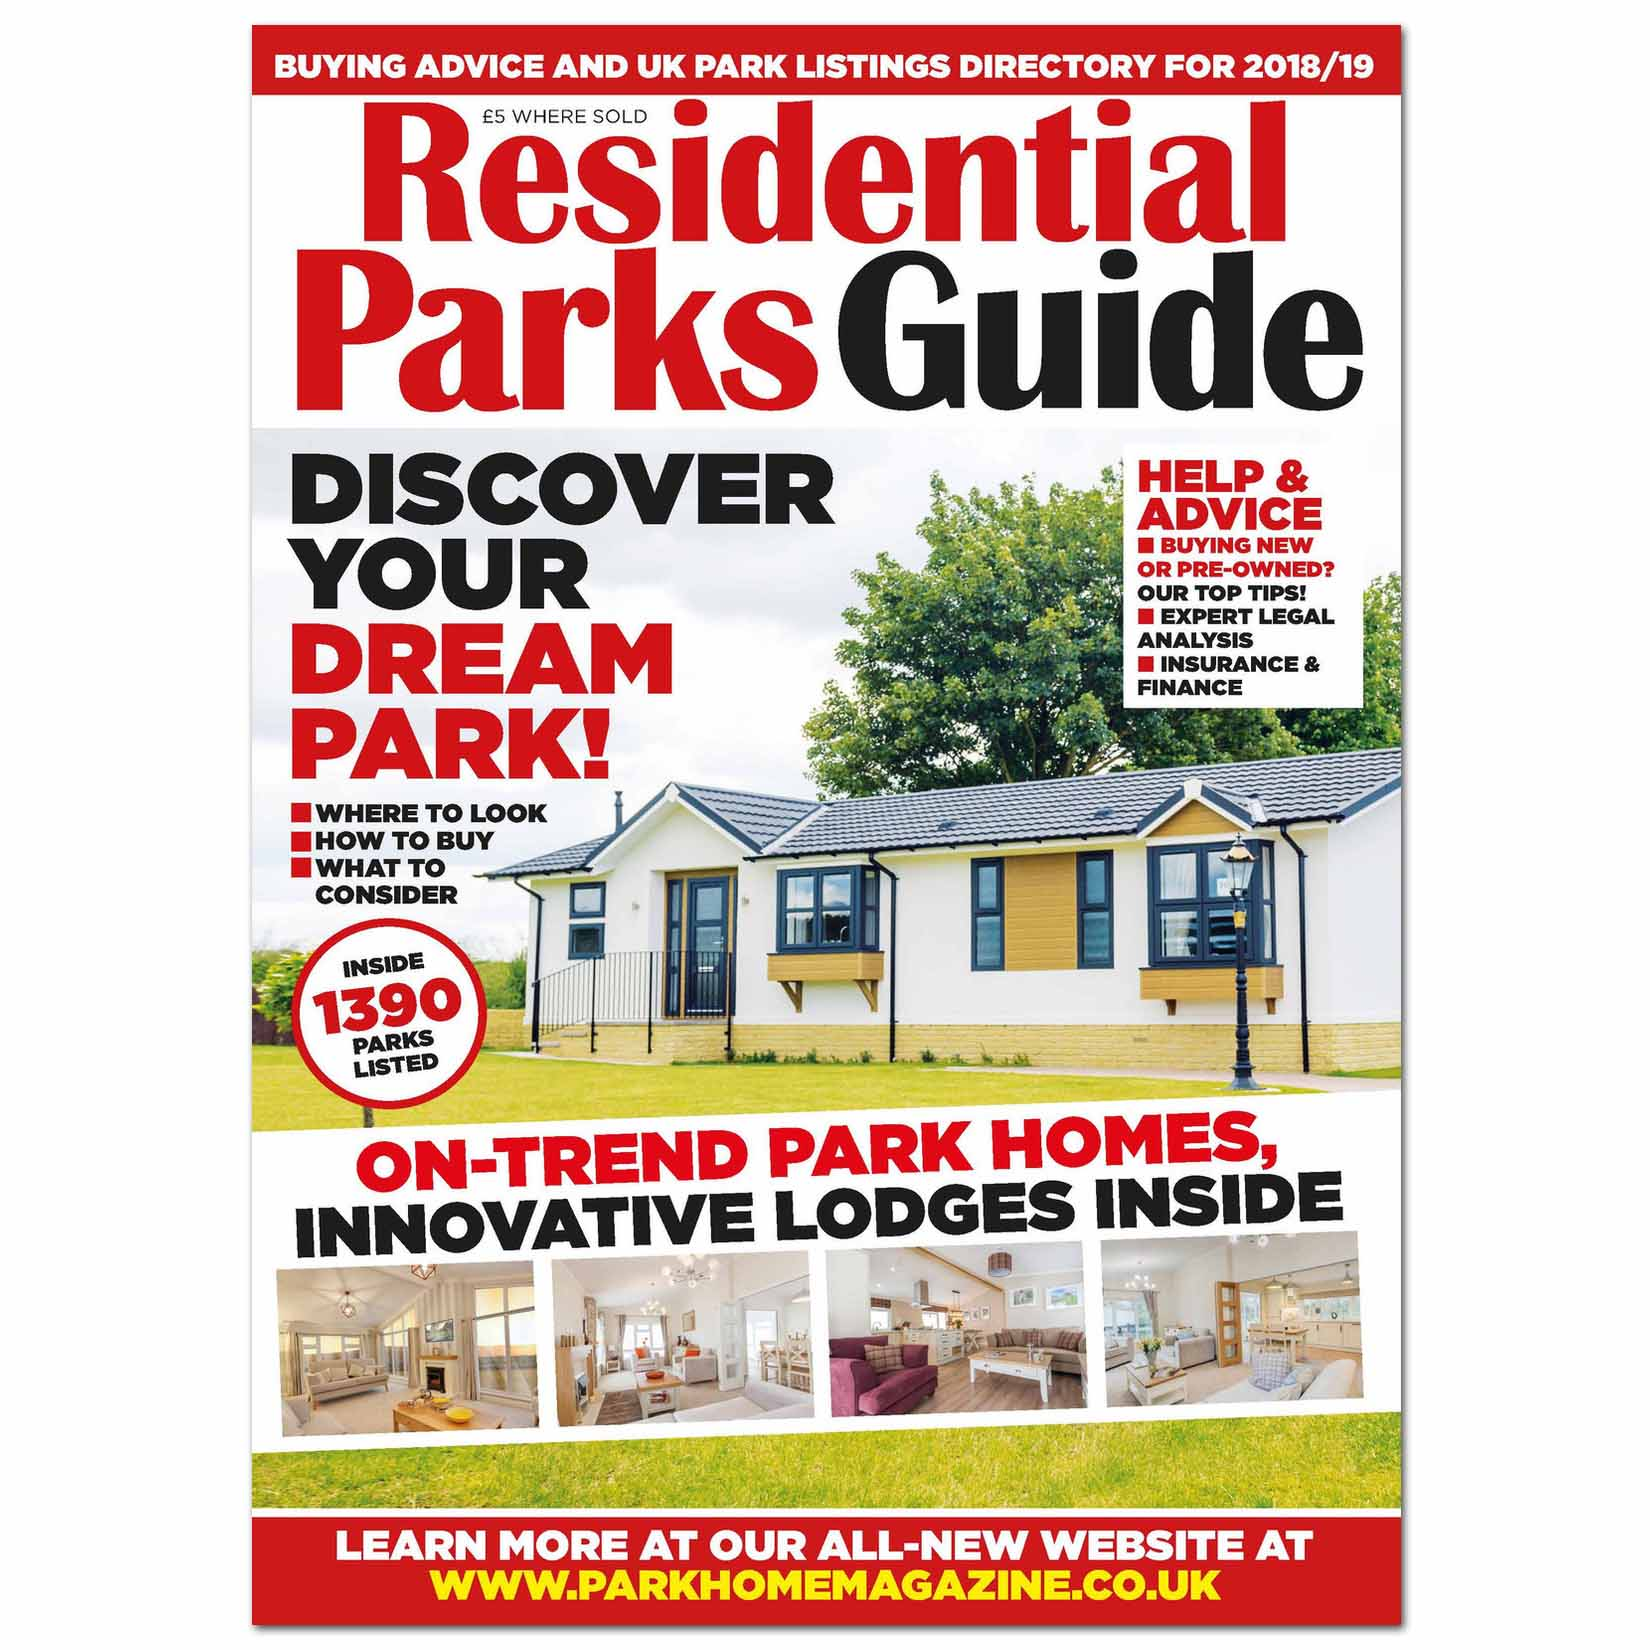 Residential Parks Guide 2018/2019